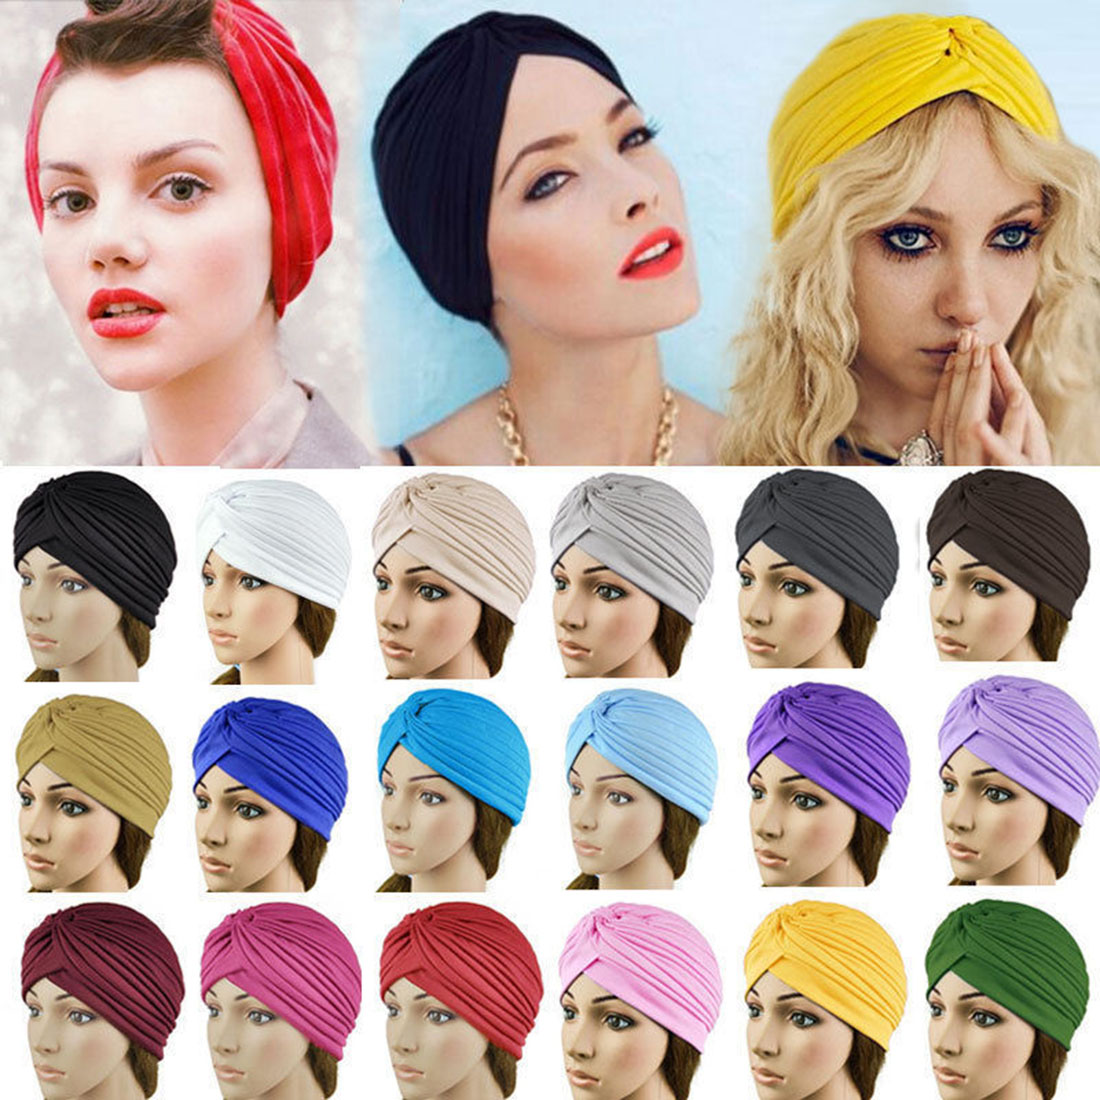 2019 Women Men's Stretchy Turban Hats Pleated Indian Caps Beanies Casual Soft Plain Weave Chemo Hats Headpiece Head Accessories